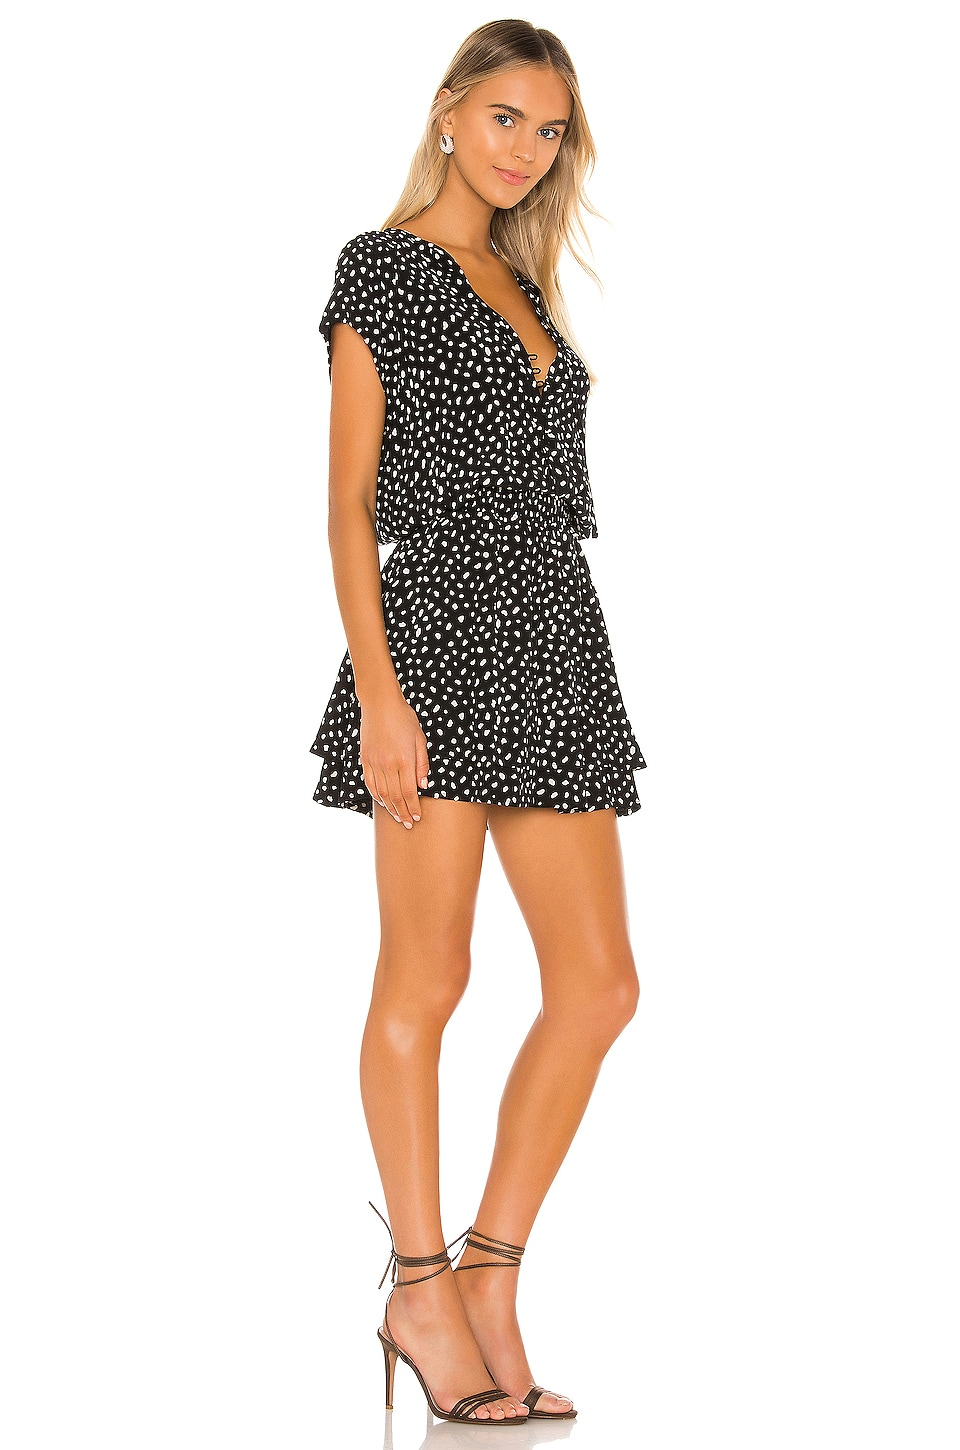 Karla Mini Dress, view 2, click to view large image.